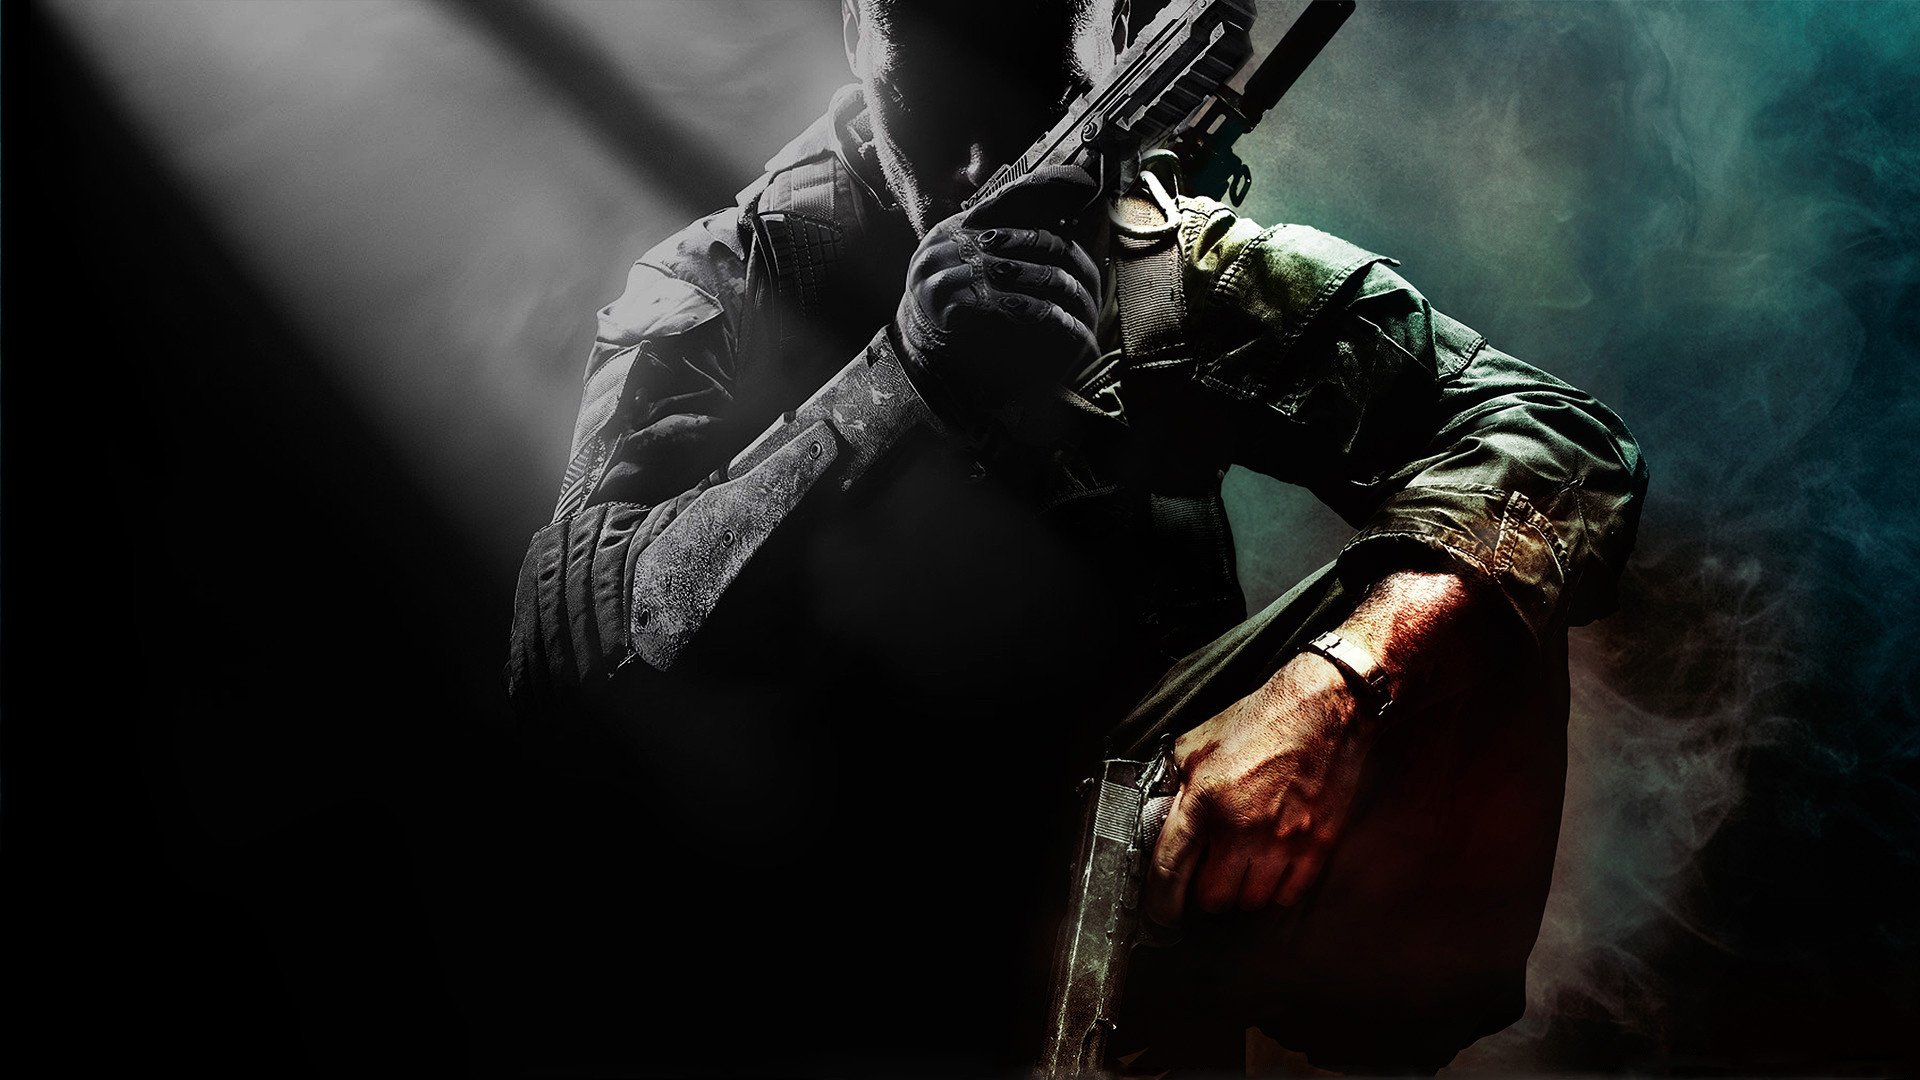 Black Ops 2 Free-to-play on PC this weekend; Steam sale till Monday | Charlie INTEL